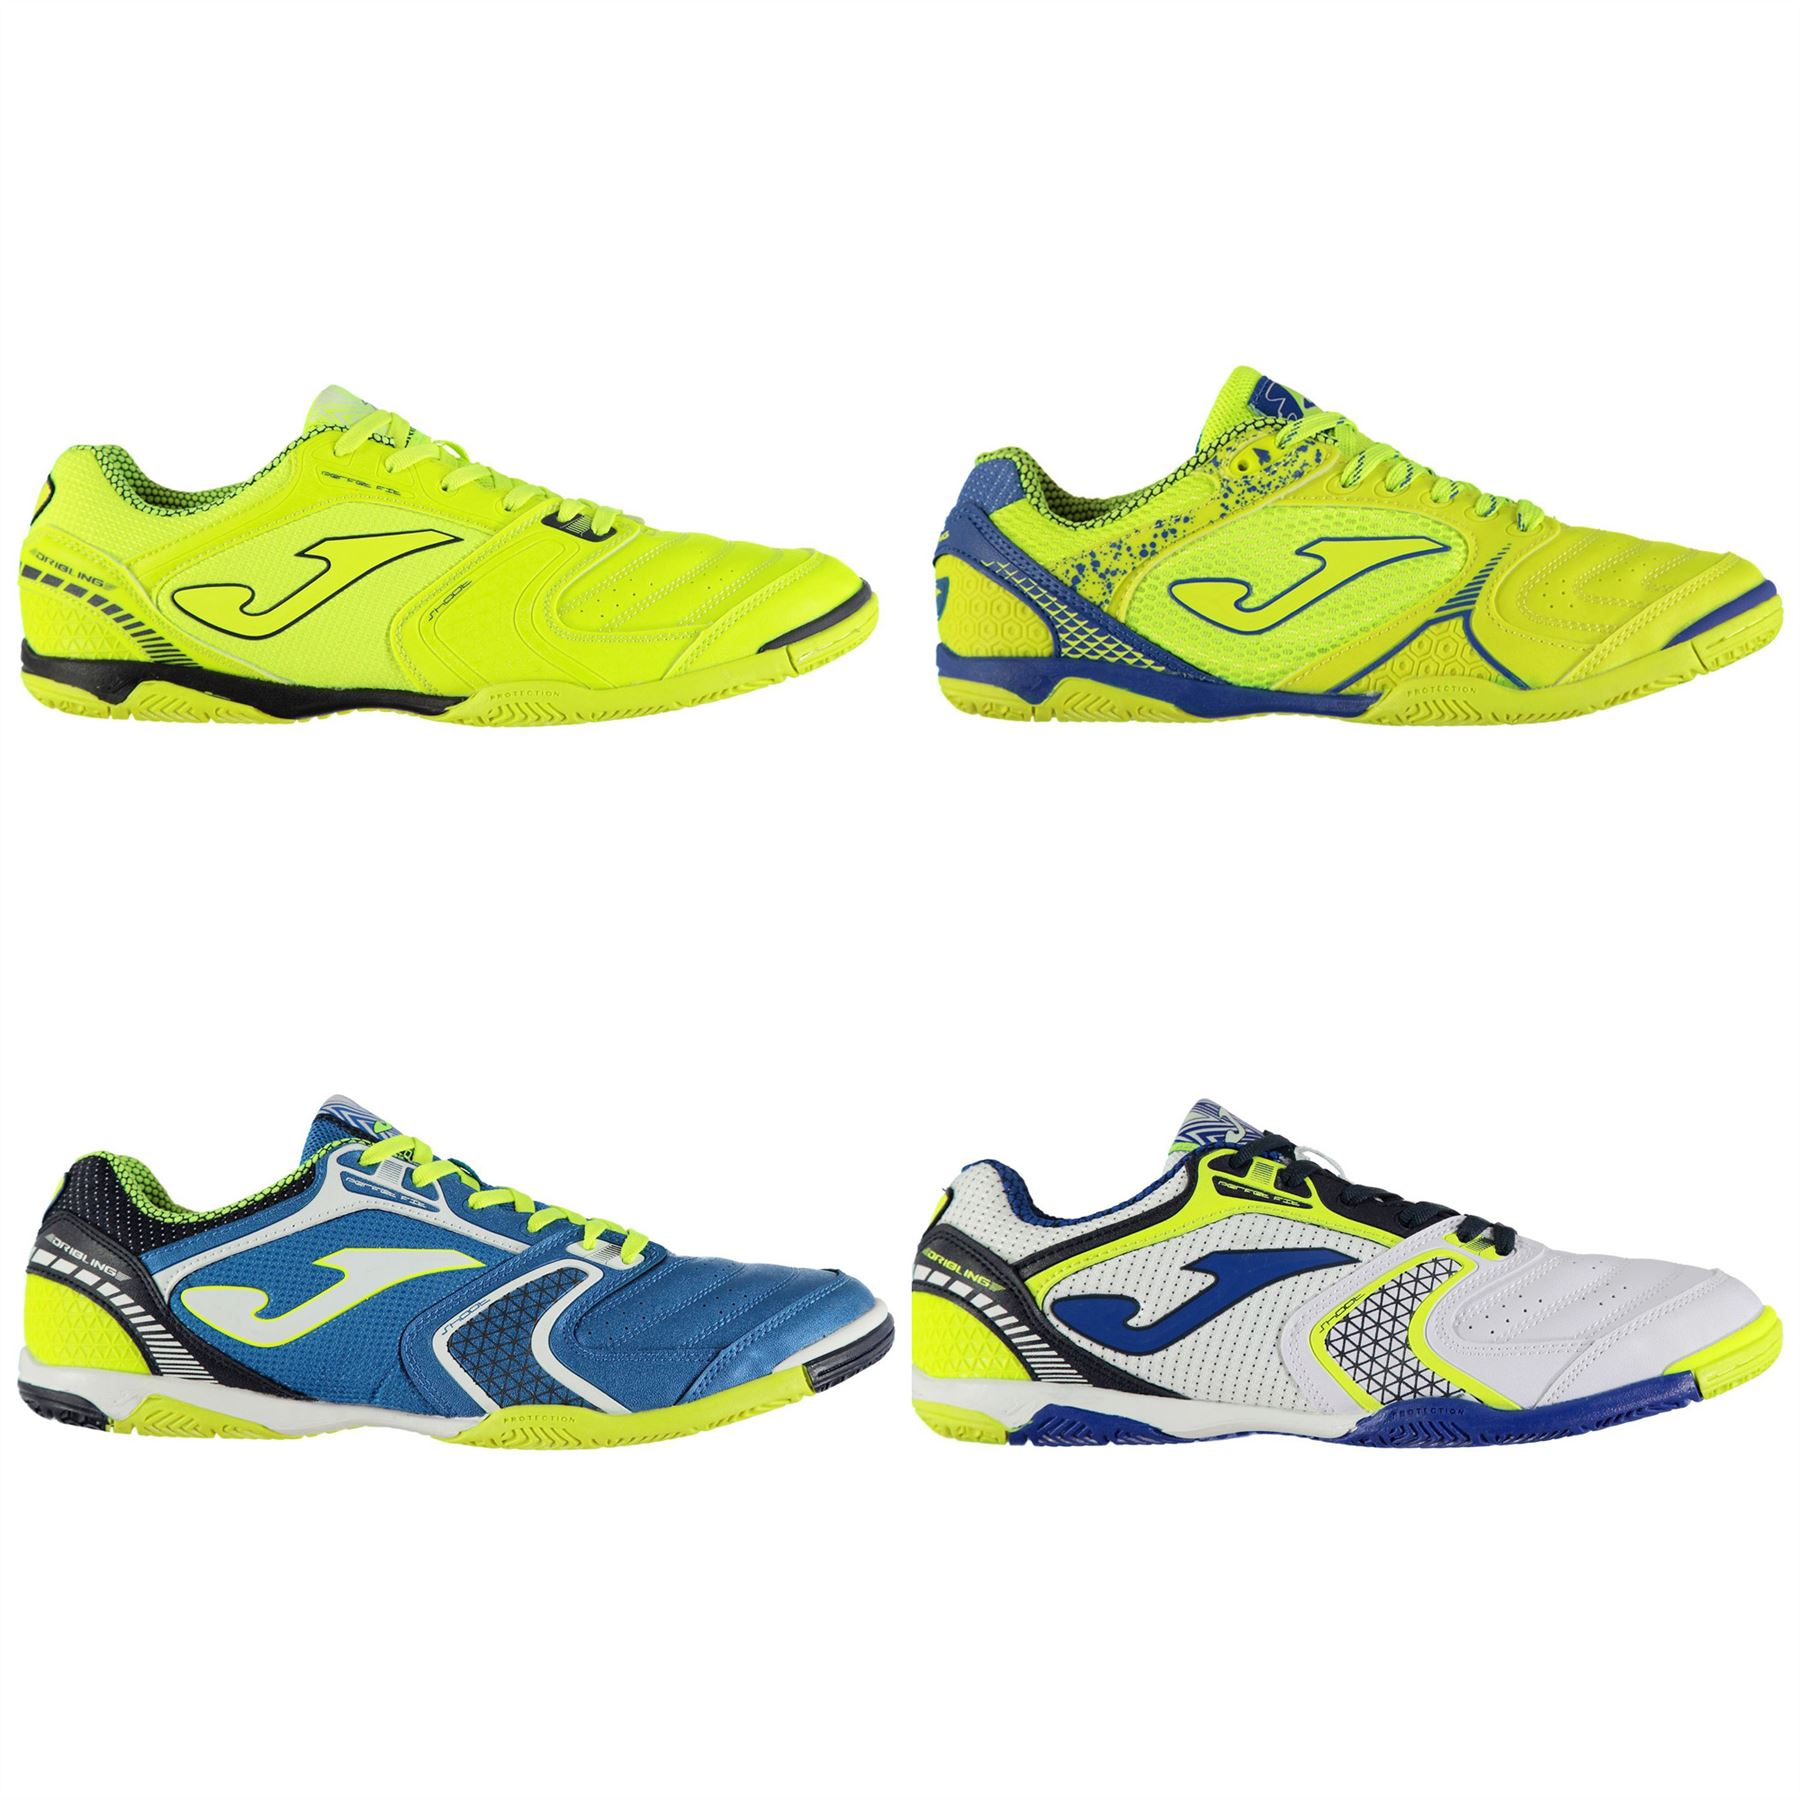 09c2df2693a Details about Joma Dribling 721 Indoor Football Trainers Mens Soccer Futsal  Shoes Sneakers